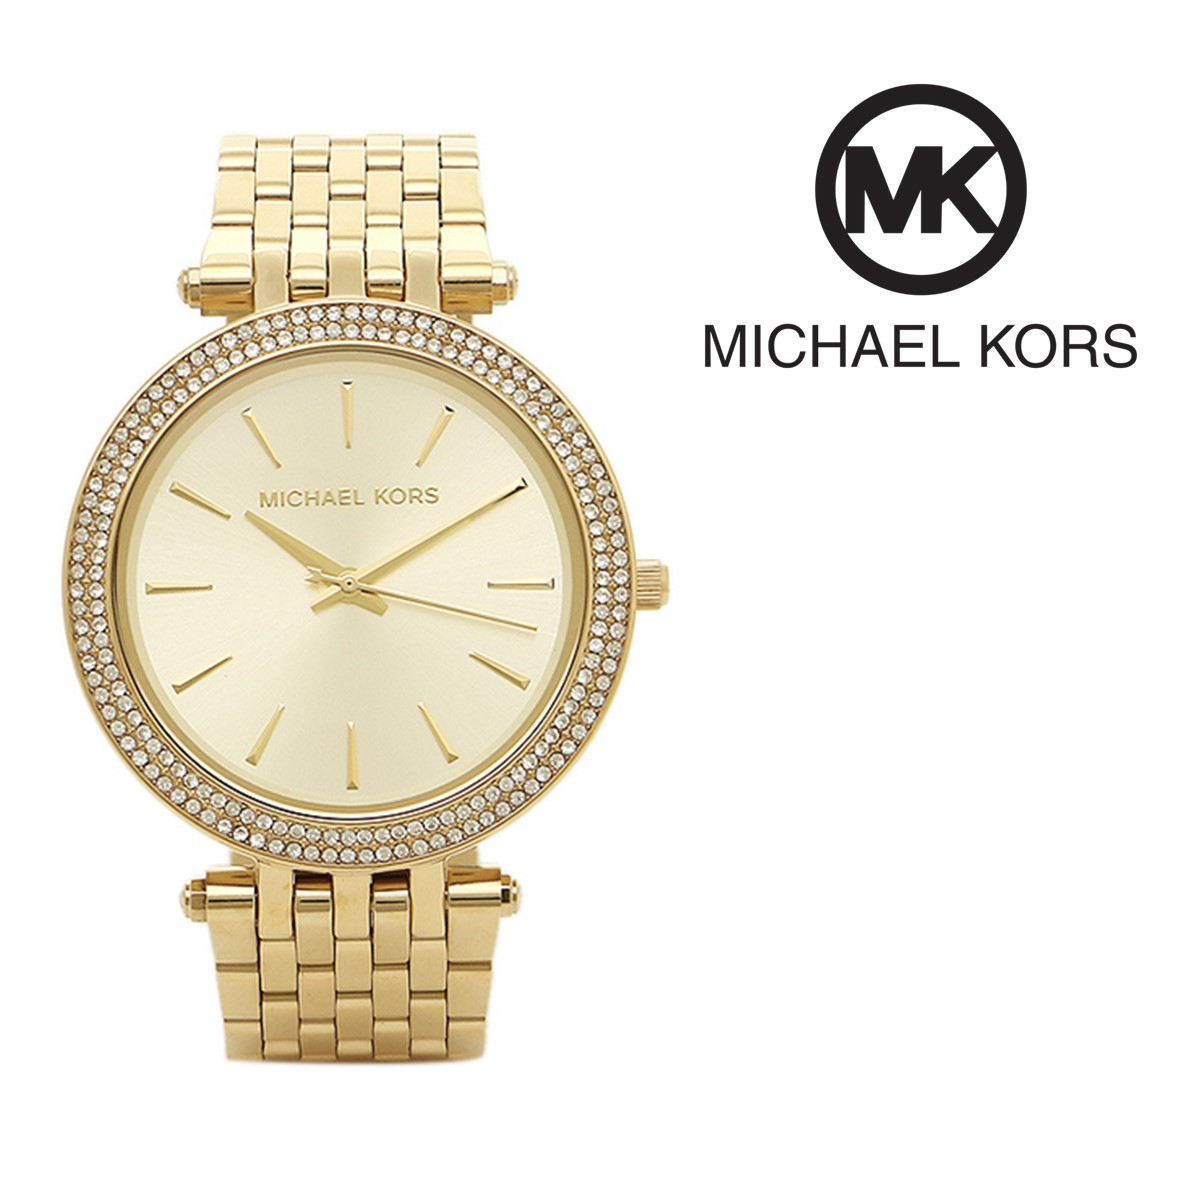 Relógio Michael Kors® Darci Glitz Dourado   5ATM - You Like It 23c823ad3e